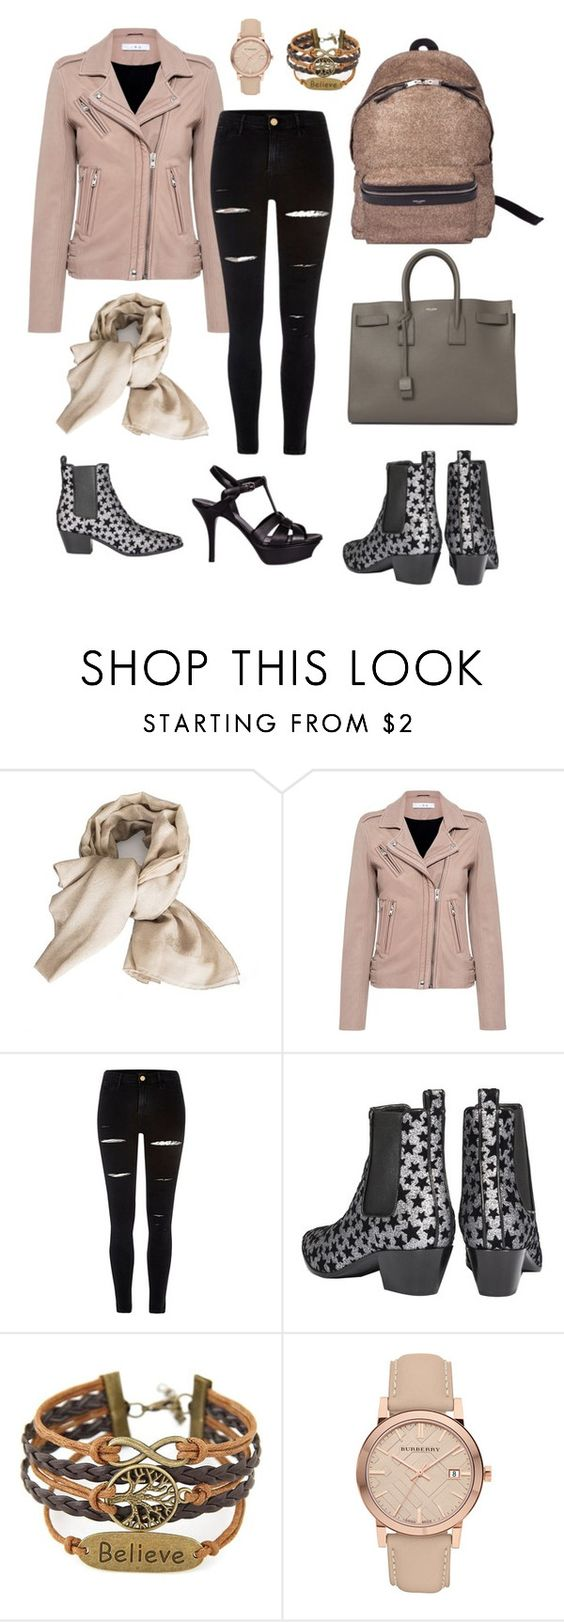 """""""Dlrboutique.com Leather and Fashion"""" by kstyle661 ❤ liked on Polyvore featuring Valentino, IRO, River Island, Yves Saint Laurent and Burberry"""